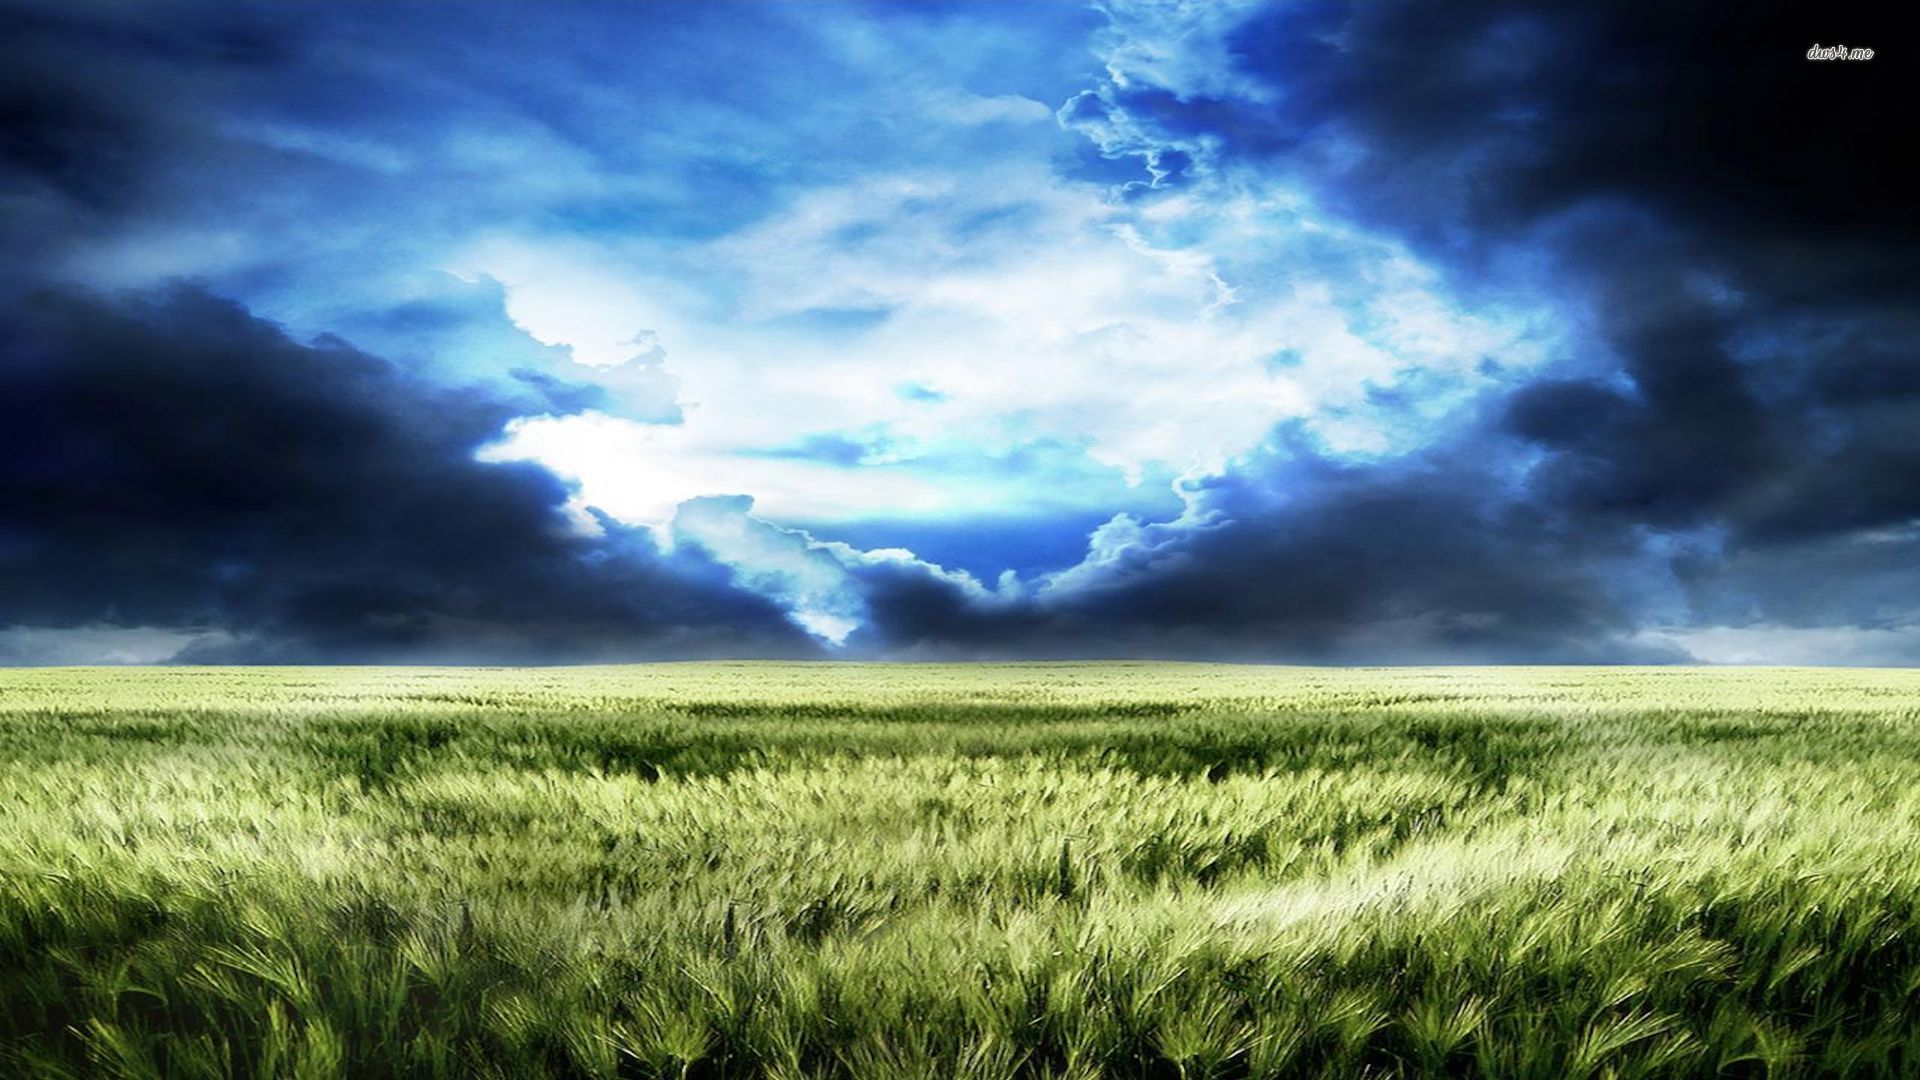 1920x1080 2565-blue-storm-clouds-over-the-field-1920x1080-nature-wallpaper ...